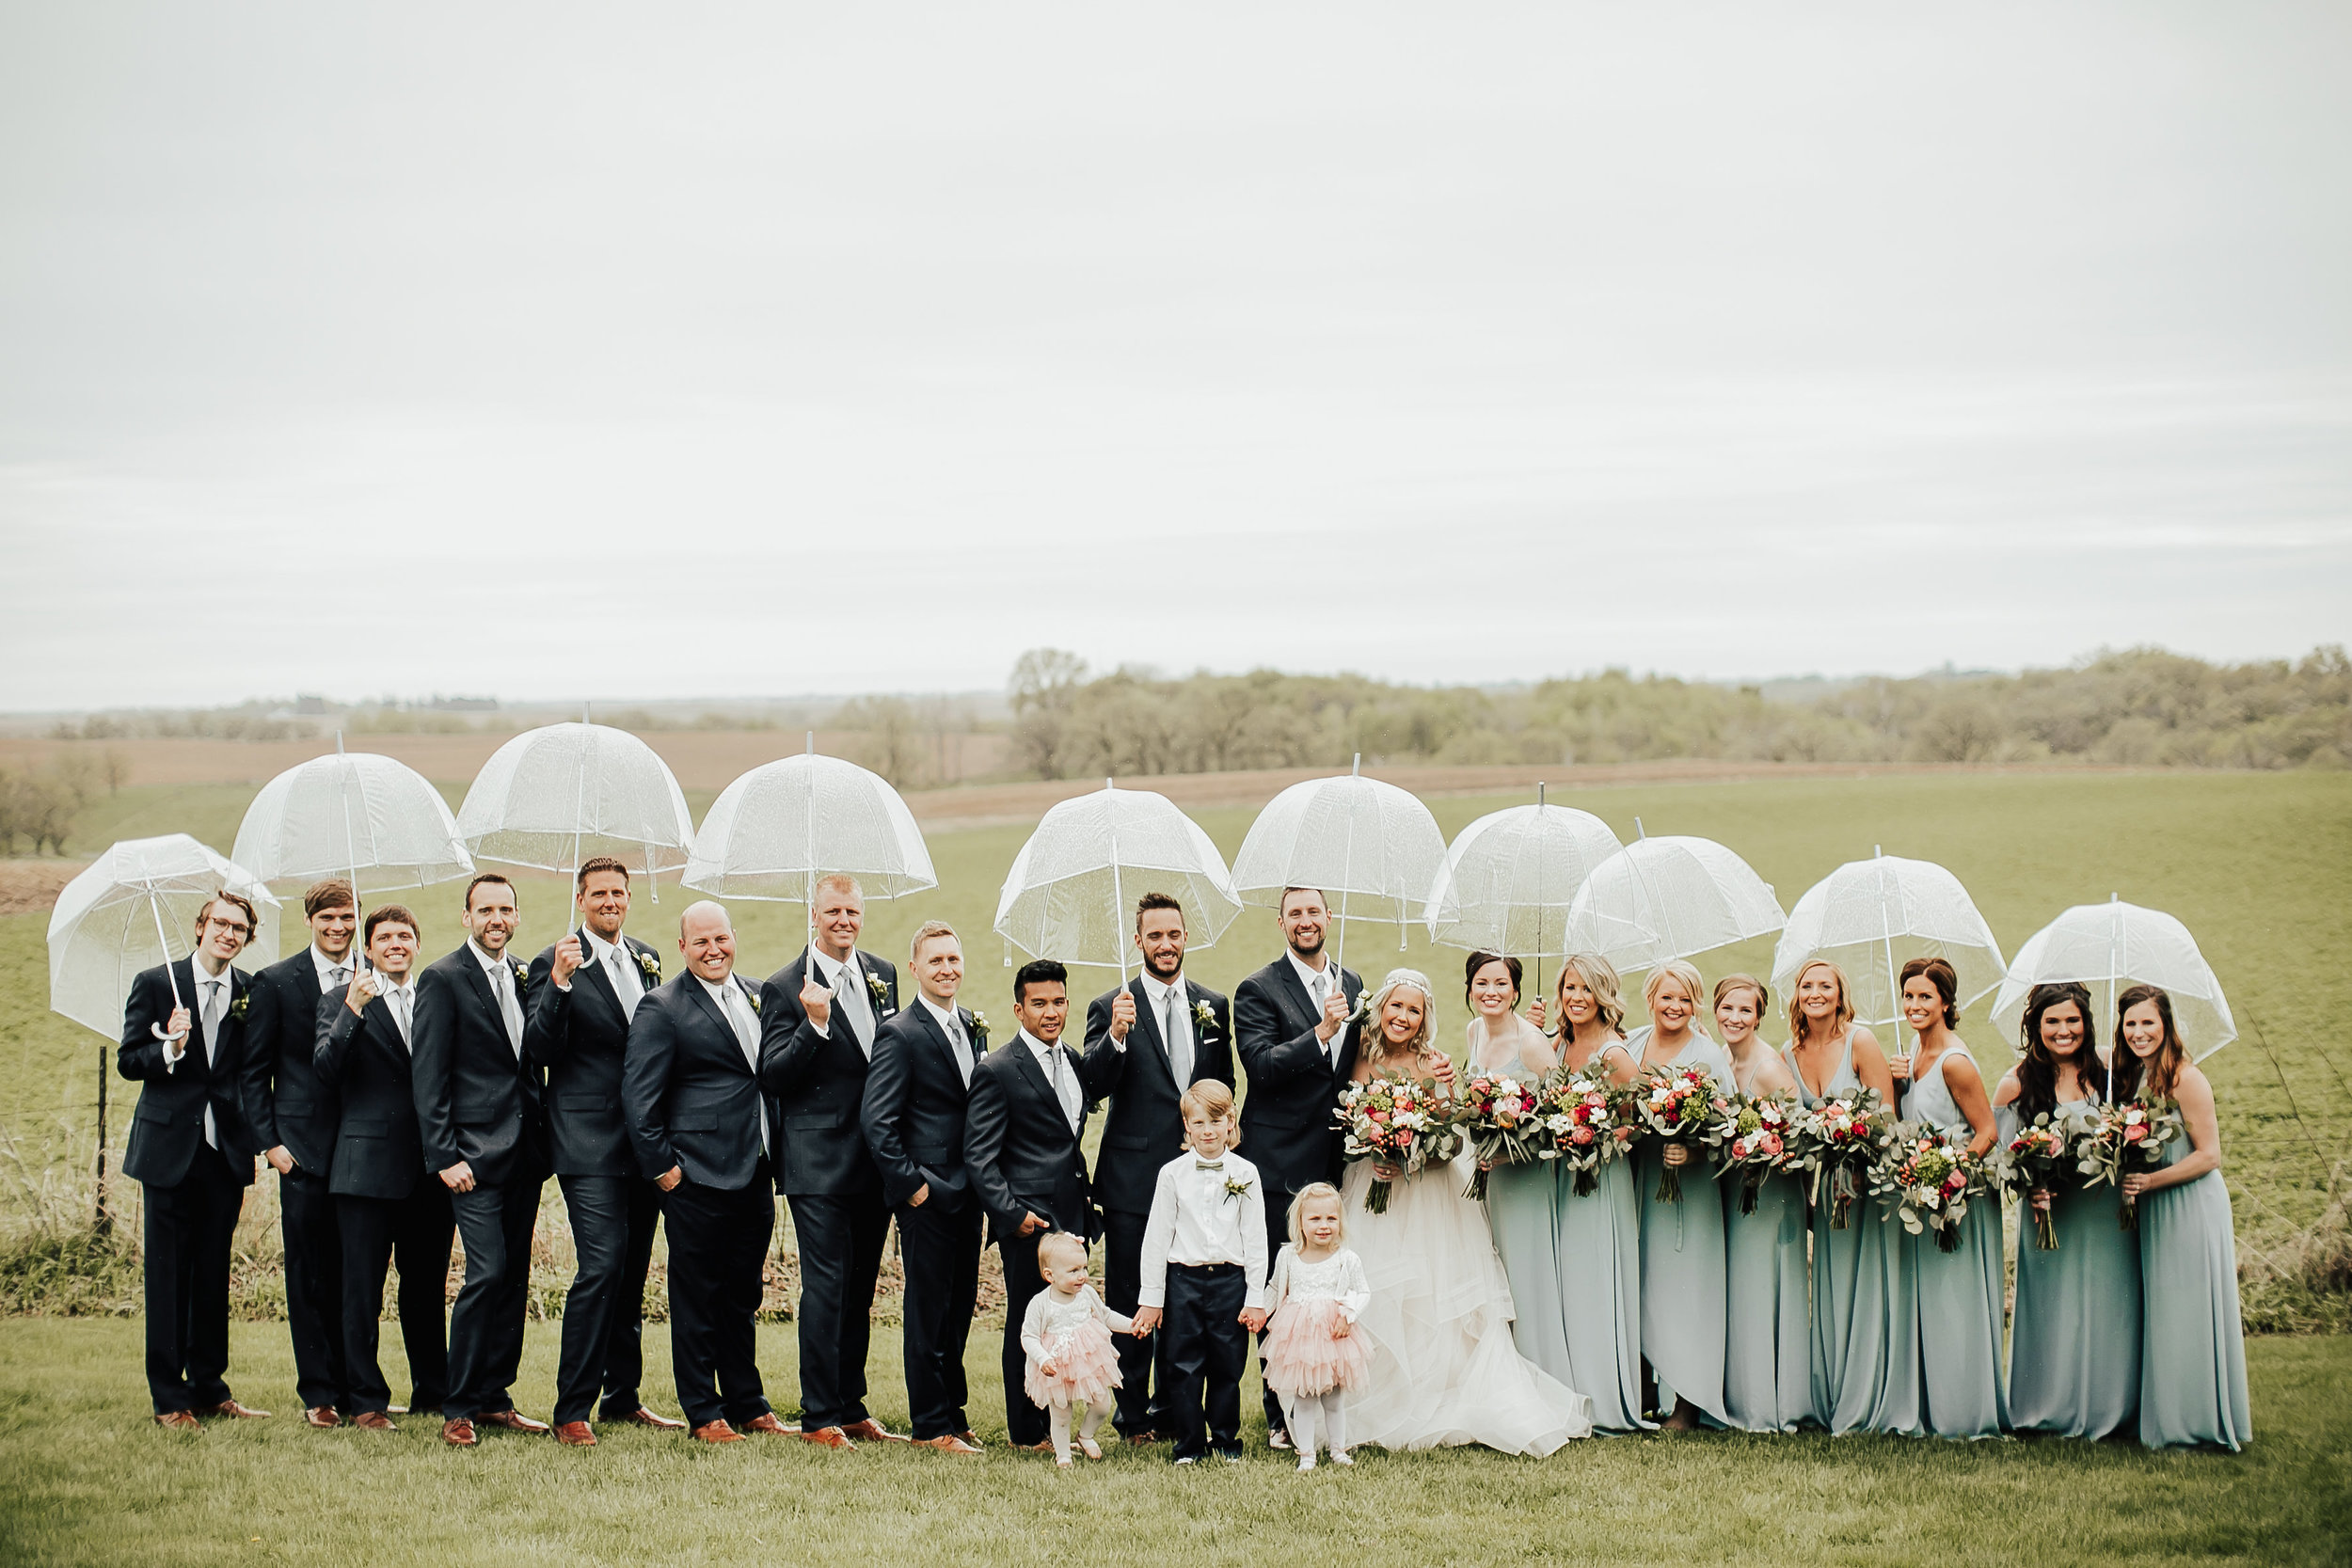 Legacy-Hil-Farm-Wedding-Wedding-Party-MN.jpg